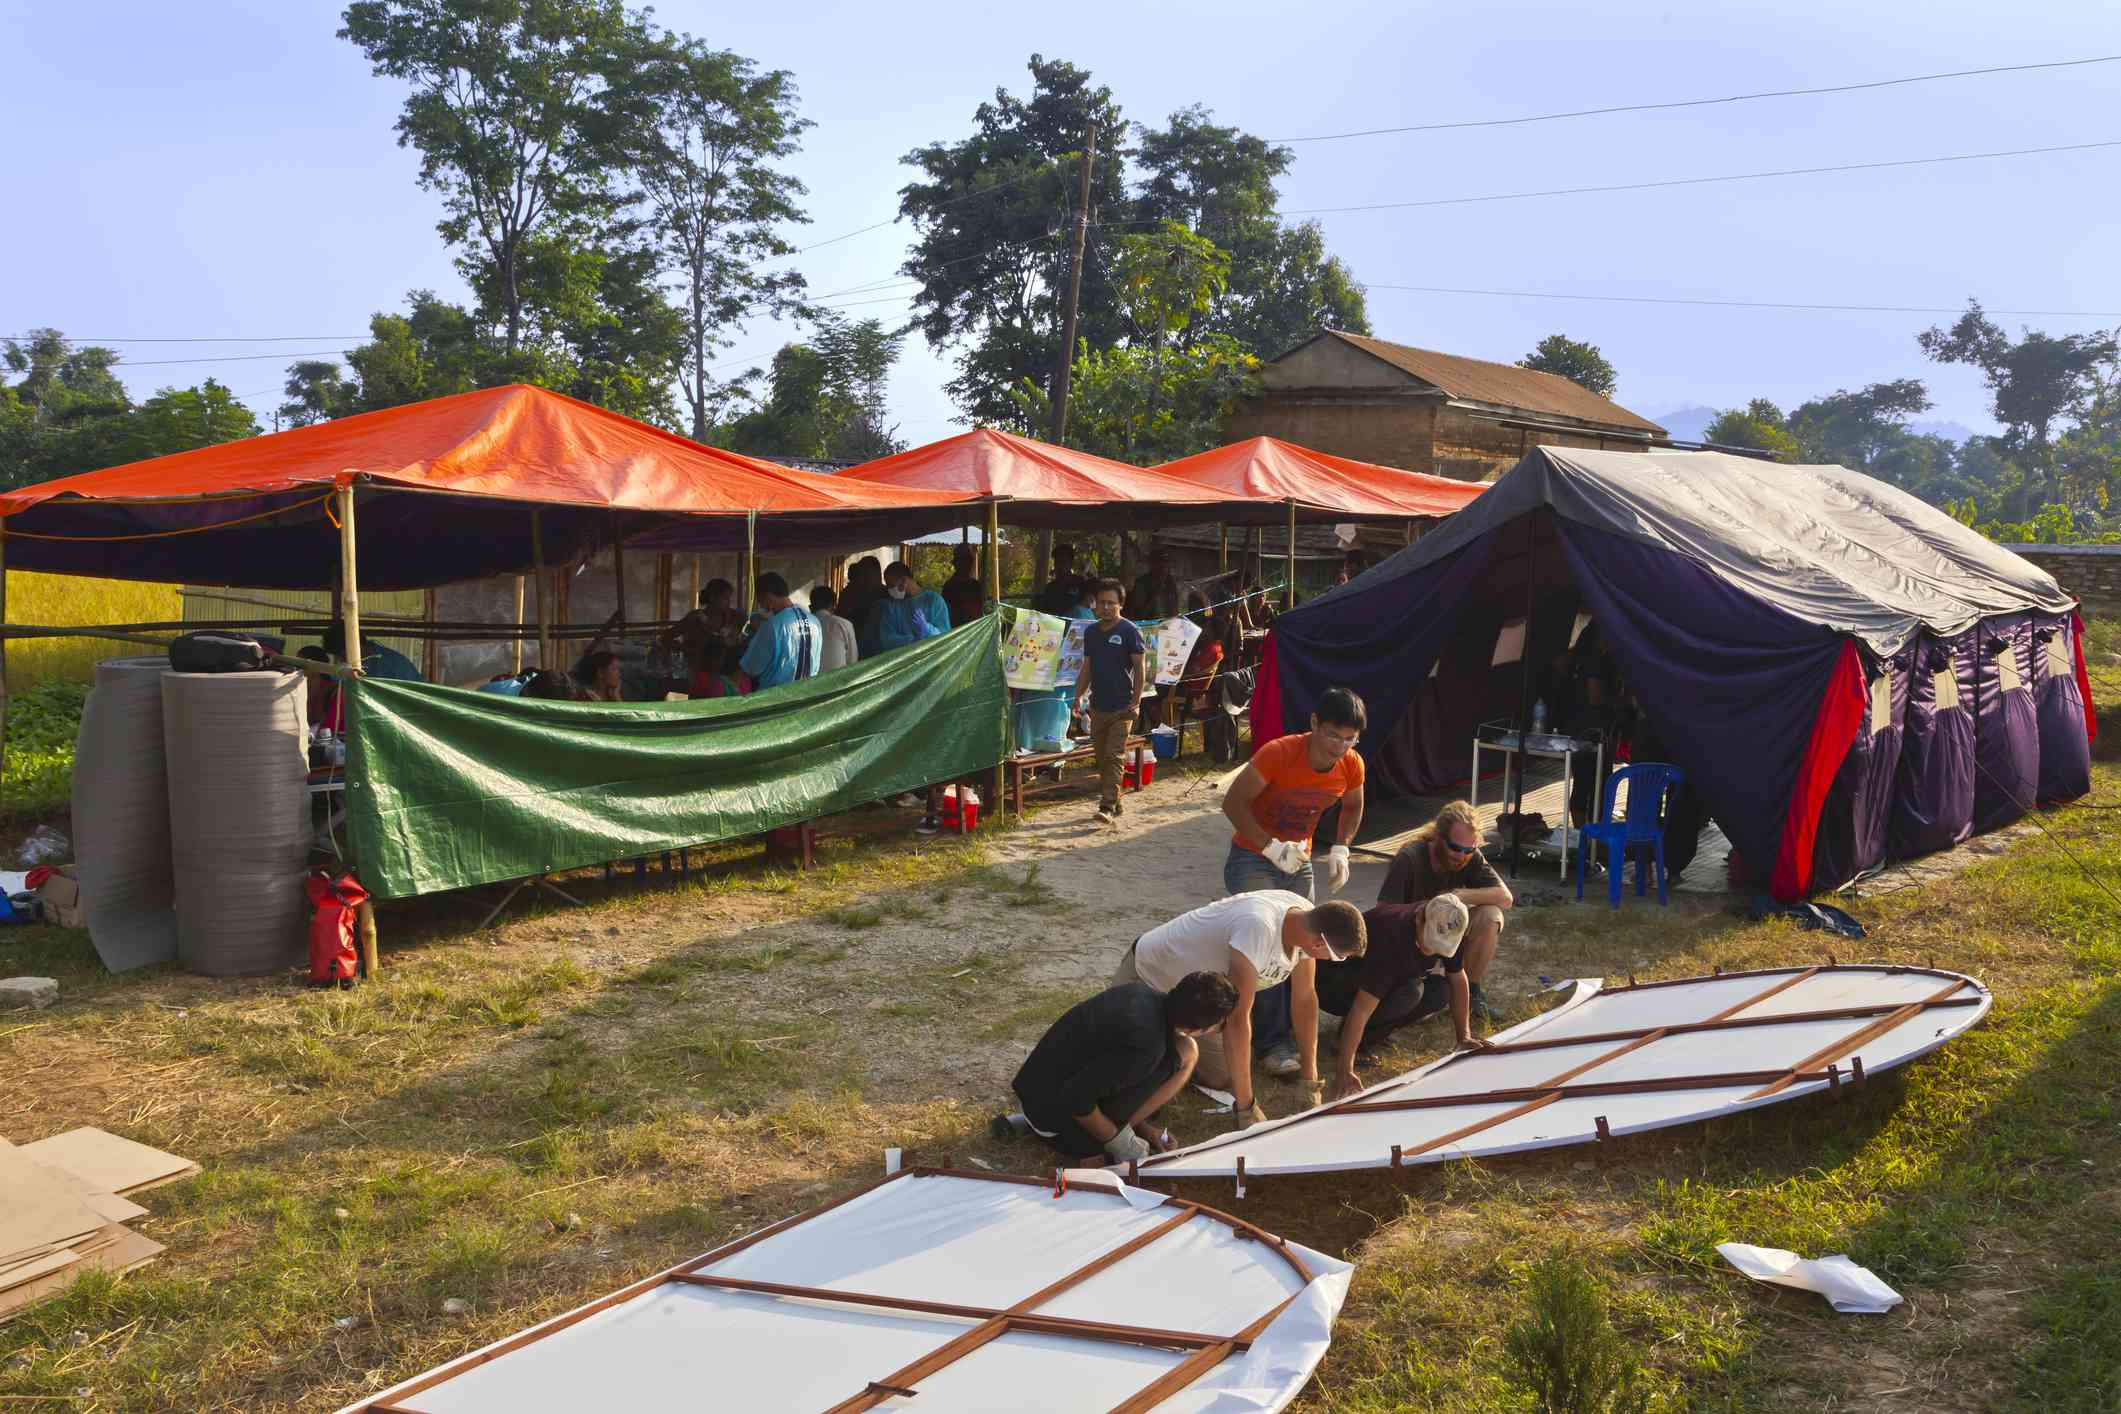 Volunteers set up a structure for medical services in Nepal